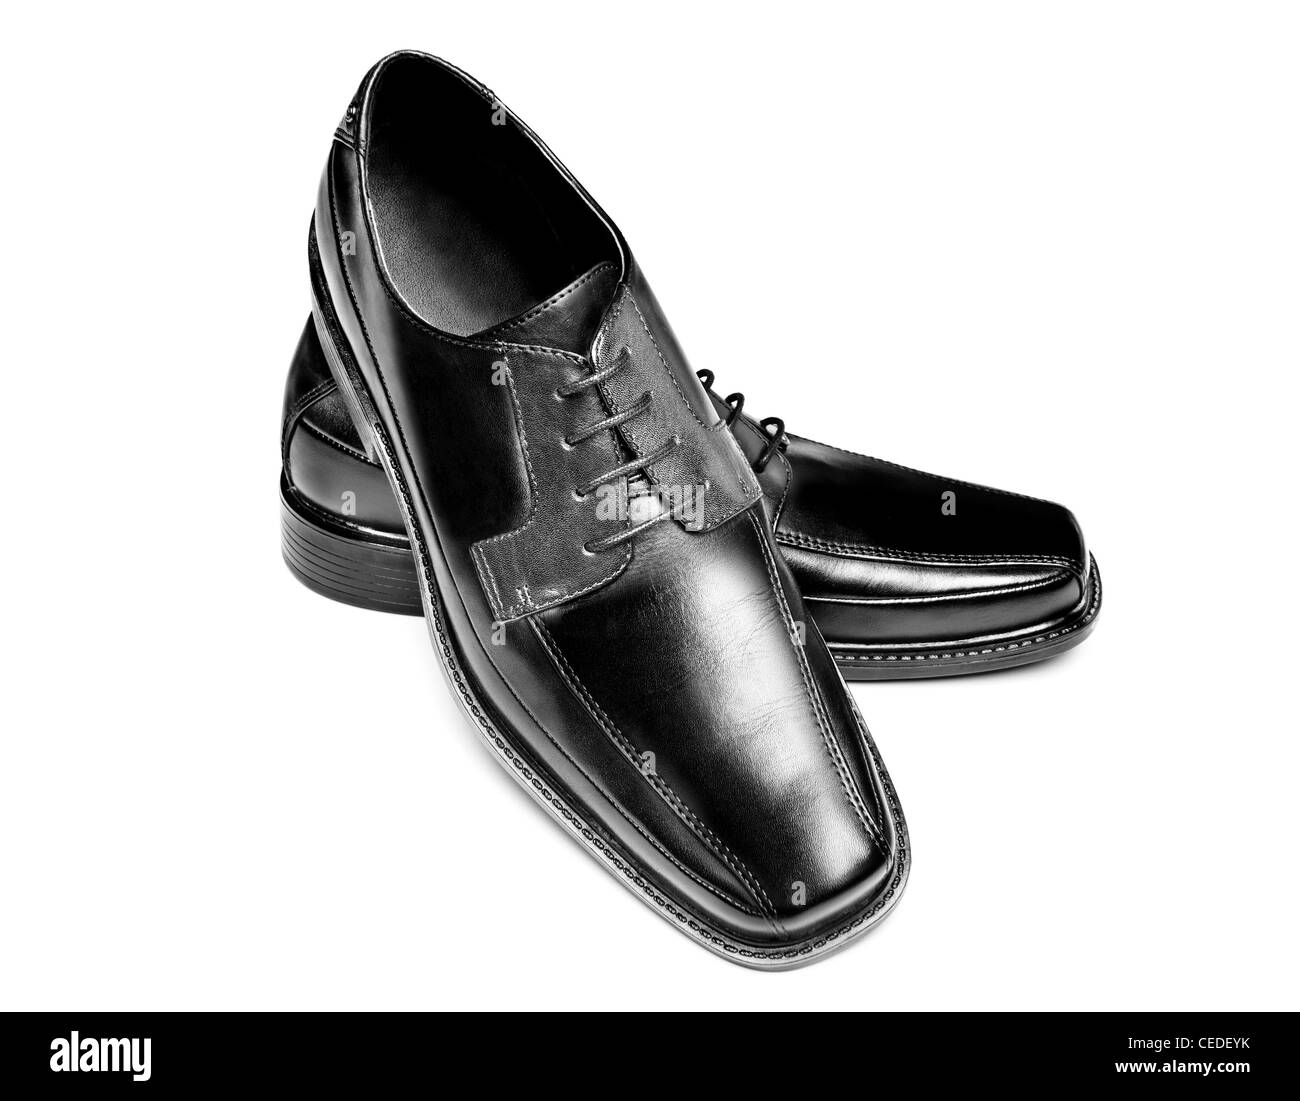 ceb08674 A pair of new leather dress shoes on a white background Stock Photo ...